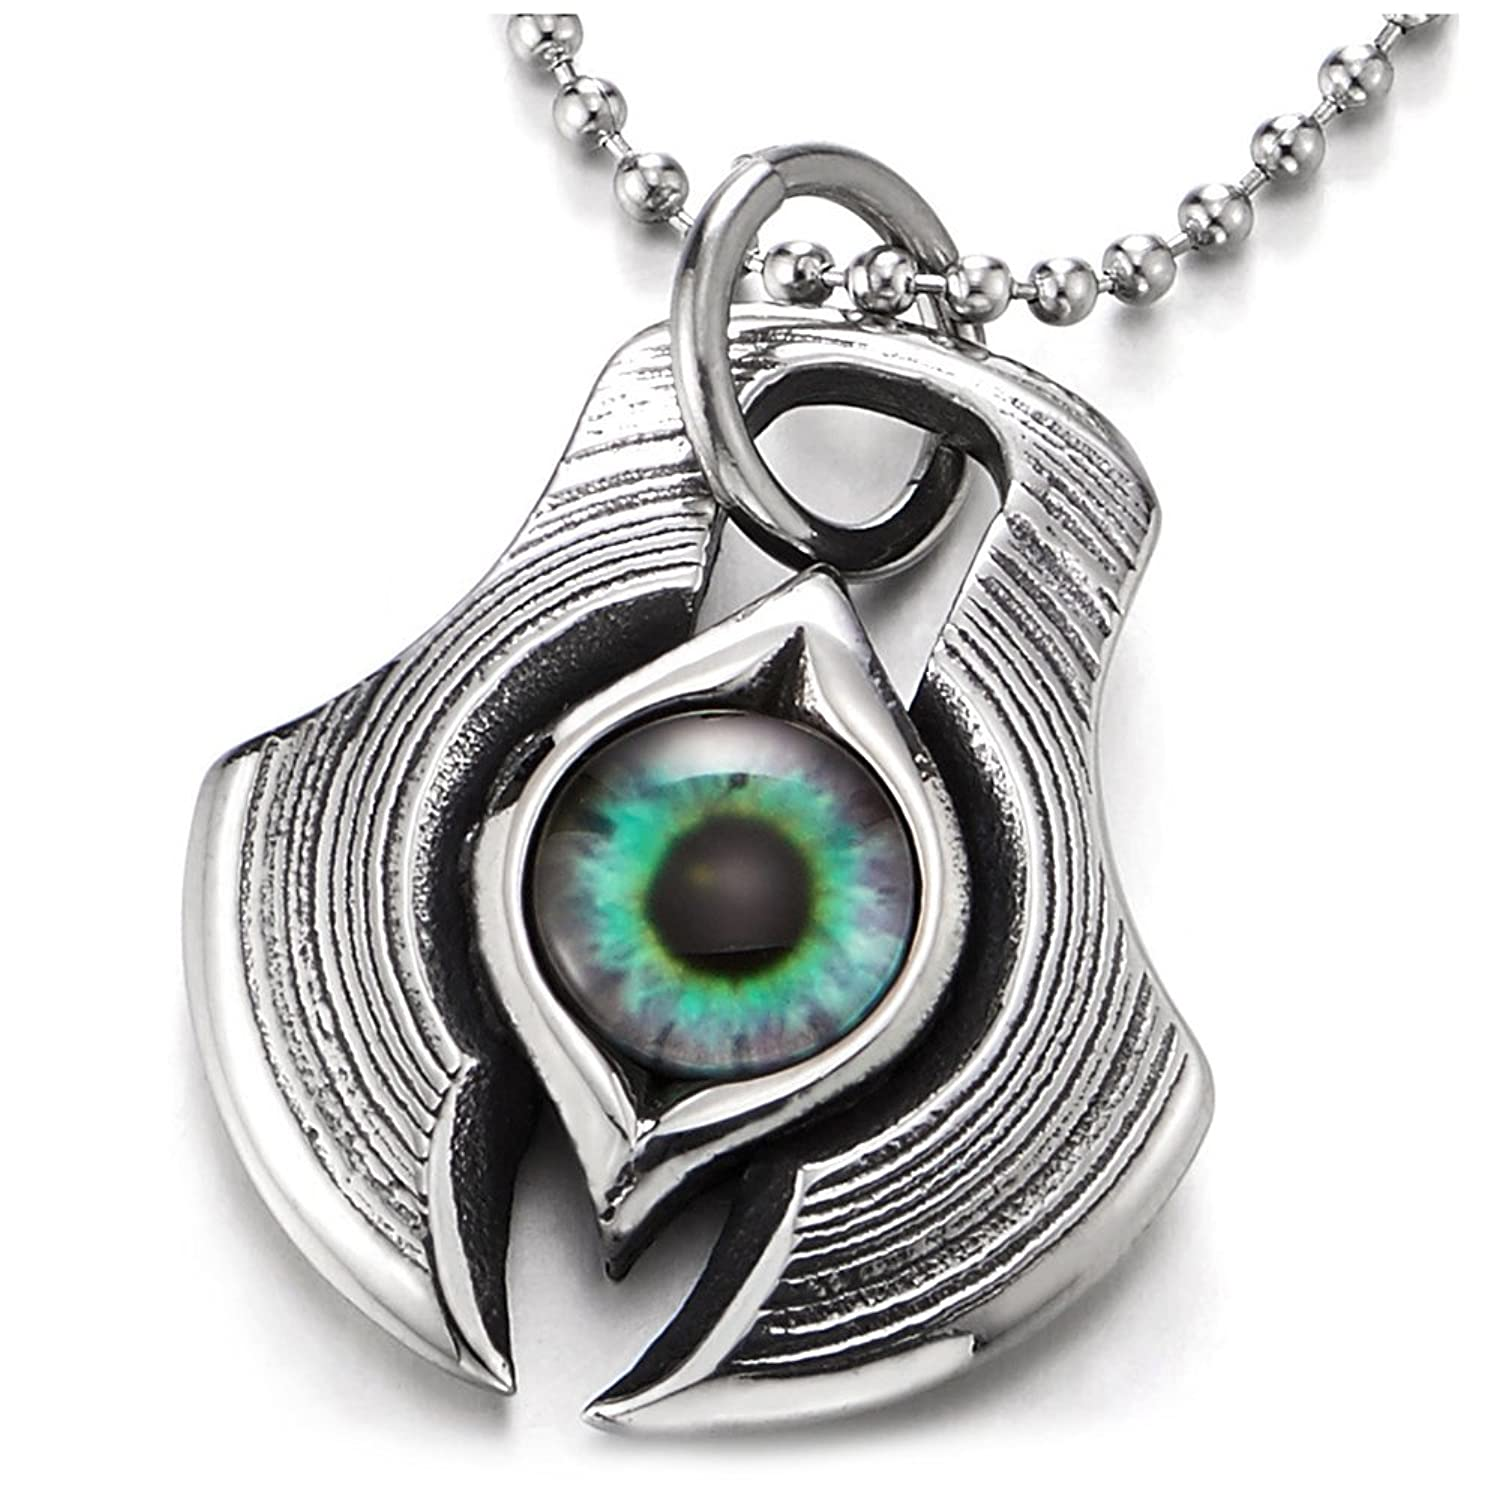 Stainless Steel Protection Evil Eye Axe Dog Tag Pendant Necklace for Men with 30 inches Ball Chain